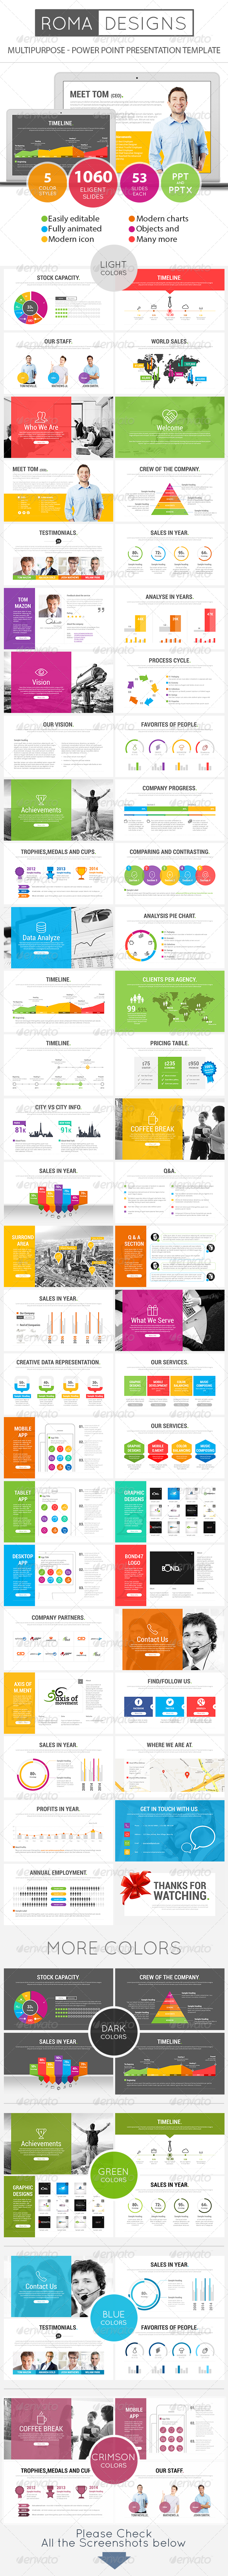 GraphicRiver Roma Power Point Presentation Template 8228860